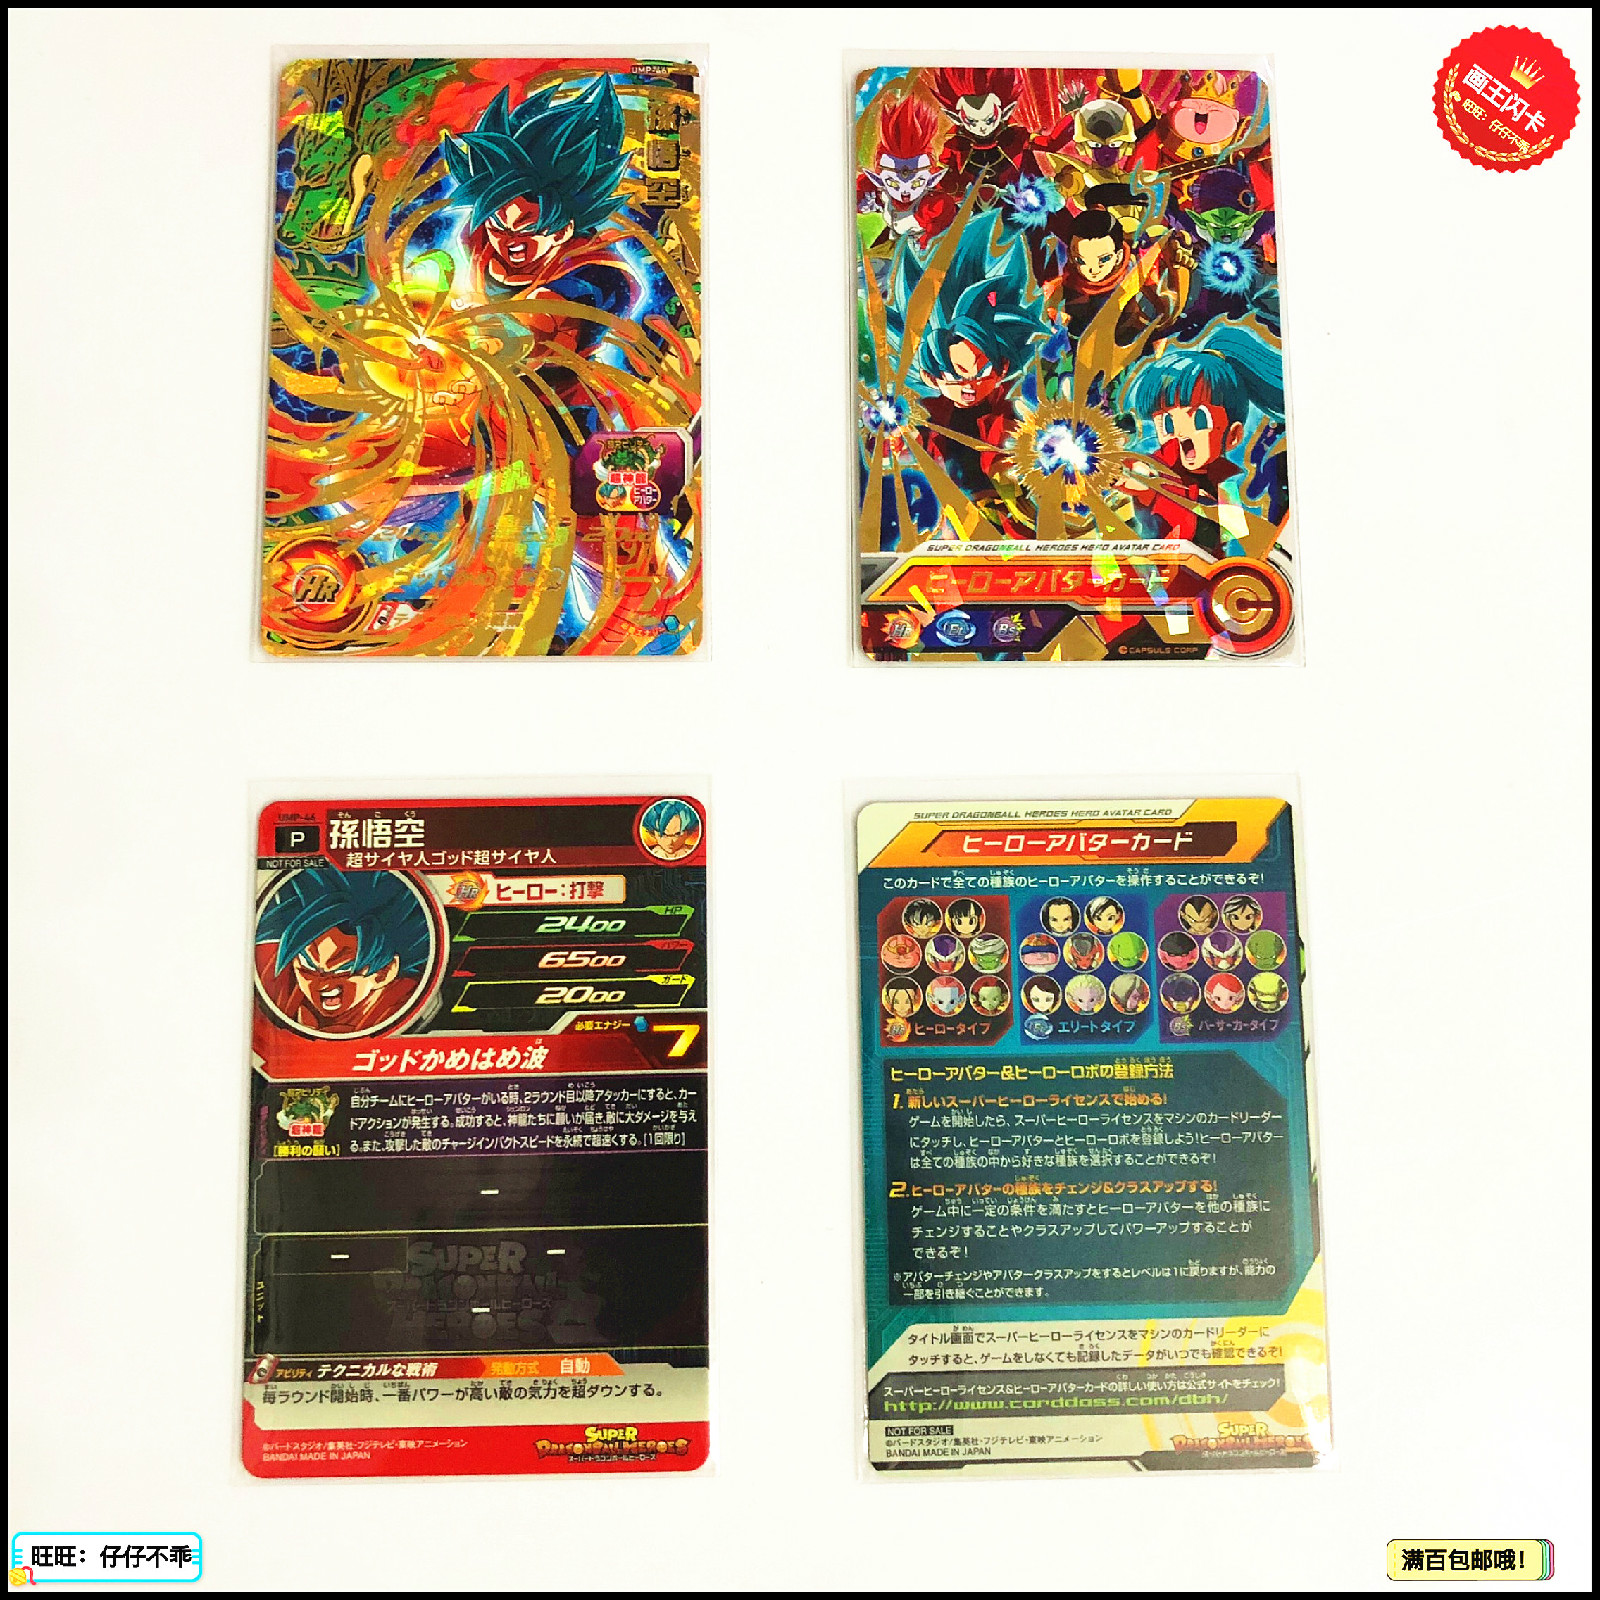 Japan Original UMP-46 Dragon Ball Hero Card Flash God Super Saiyan Goku Toys Hobbies Collectibles Game Collection Anime Cards